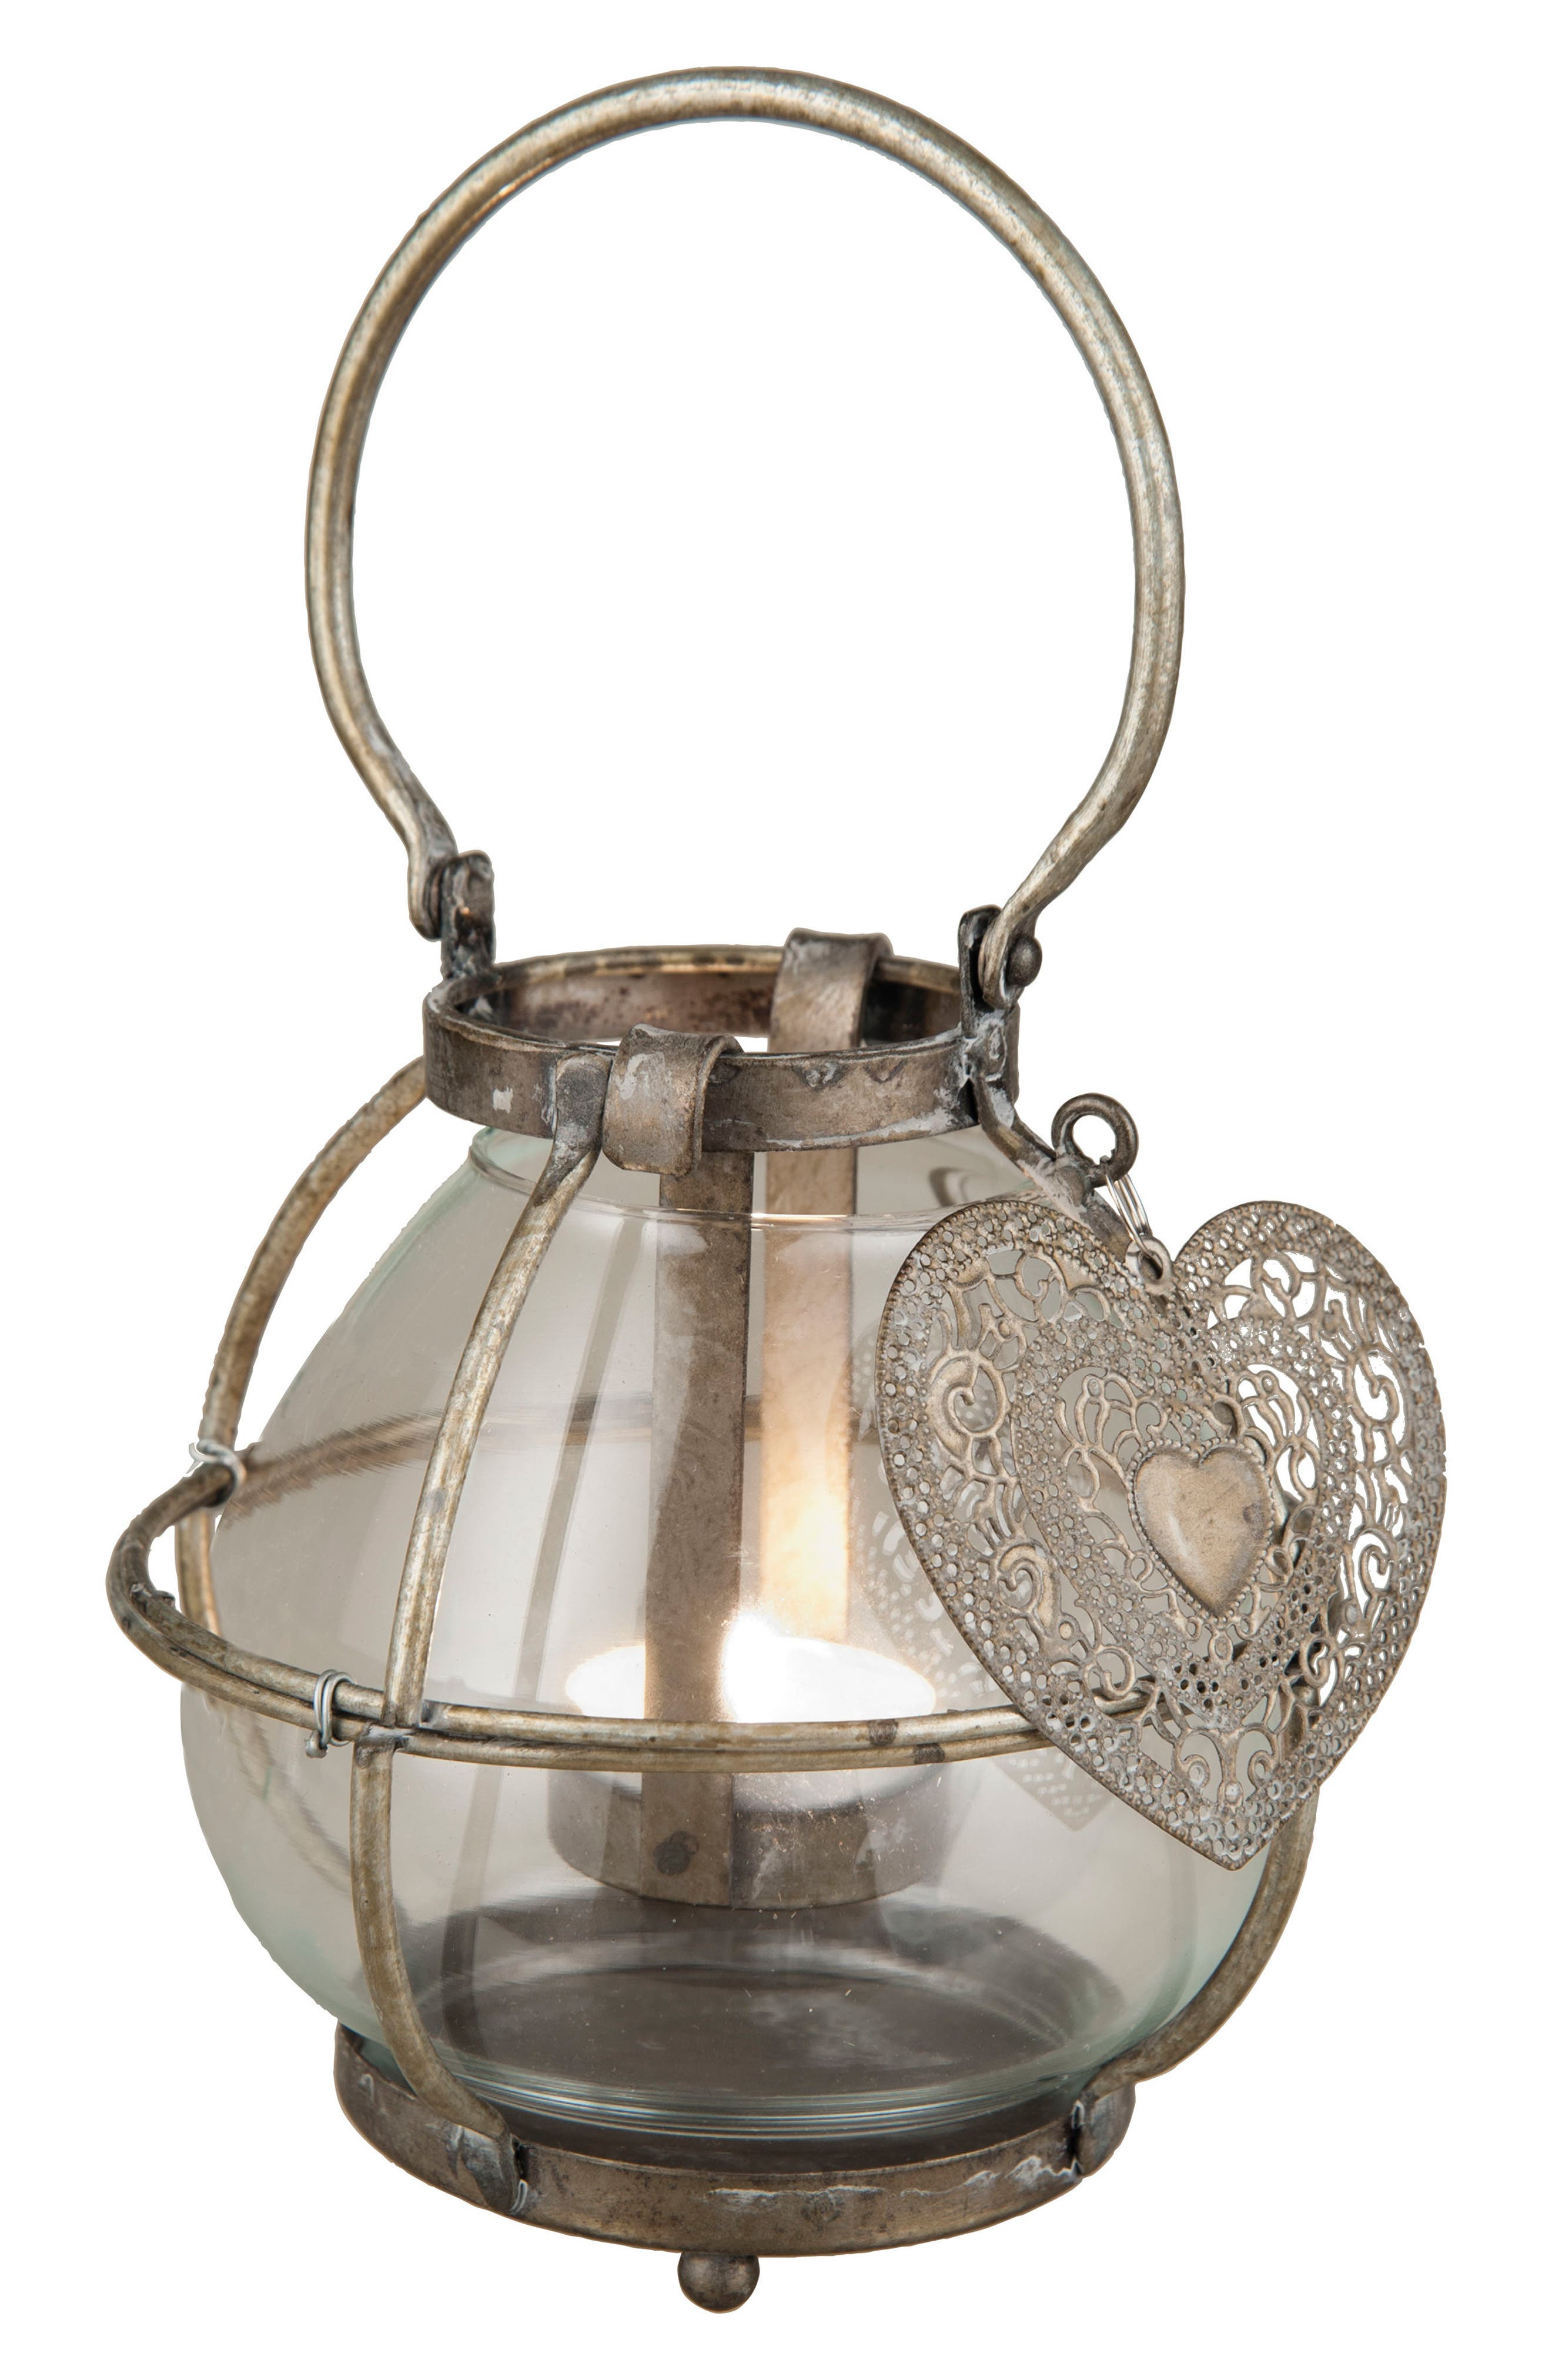 With Love Lantern Candle Holder,                             Main thumbnail 1, color,                             Metal/ Glass